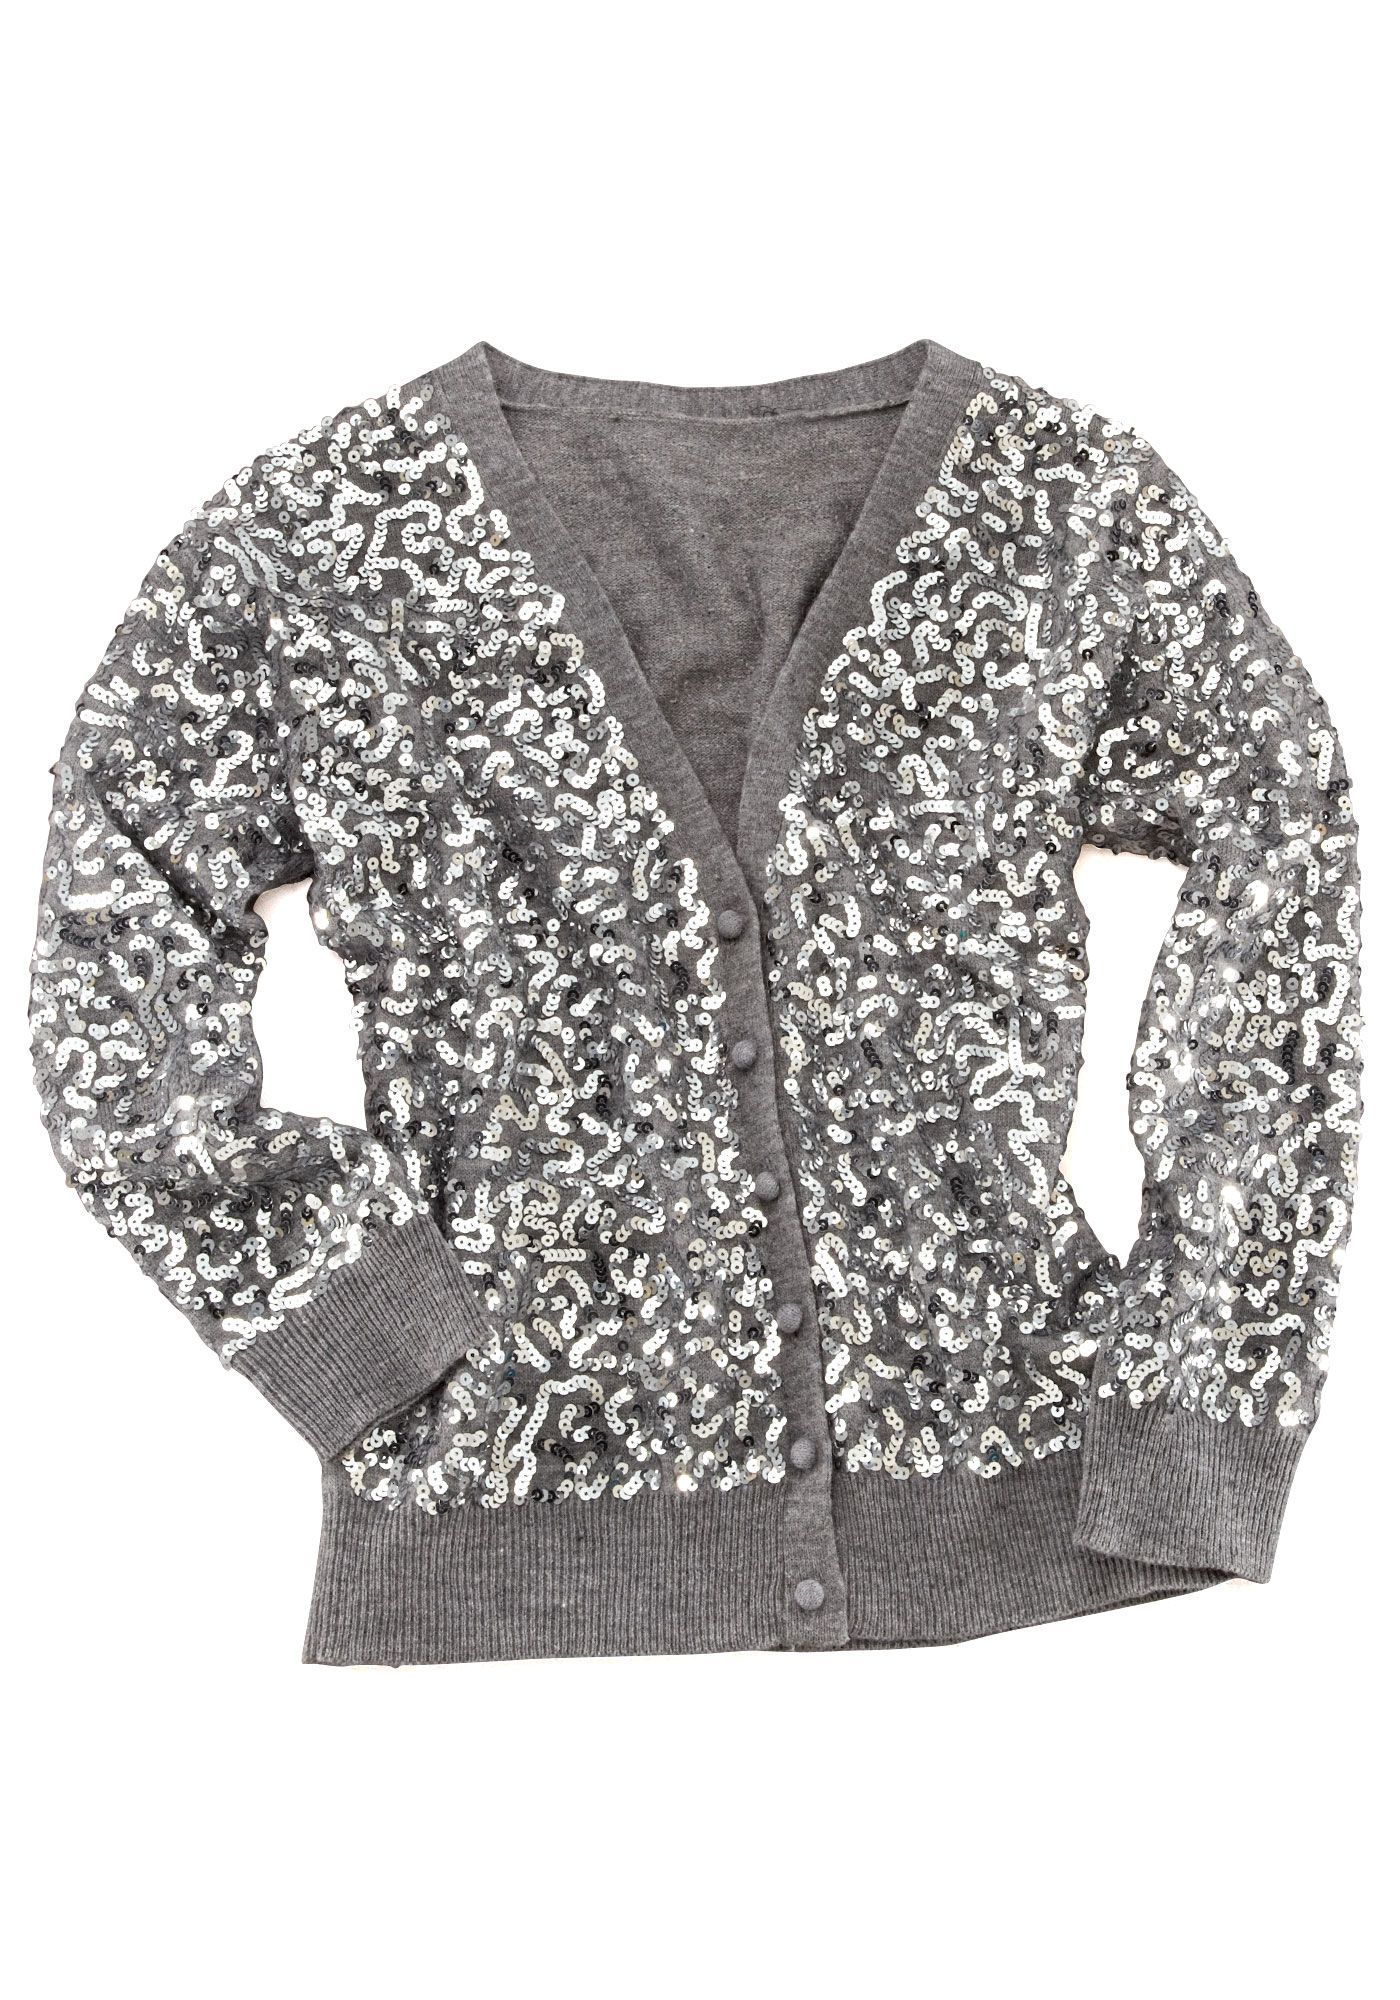 Silver Sequin Cardigan | Dress hippy | Pinterest | Sequin cardigan ...